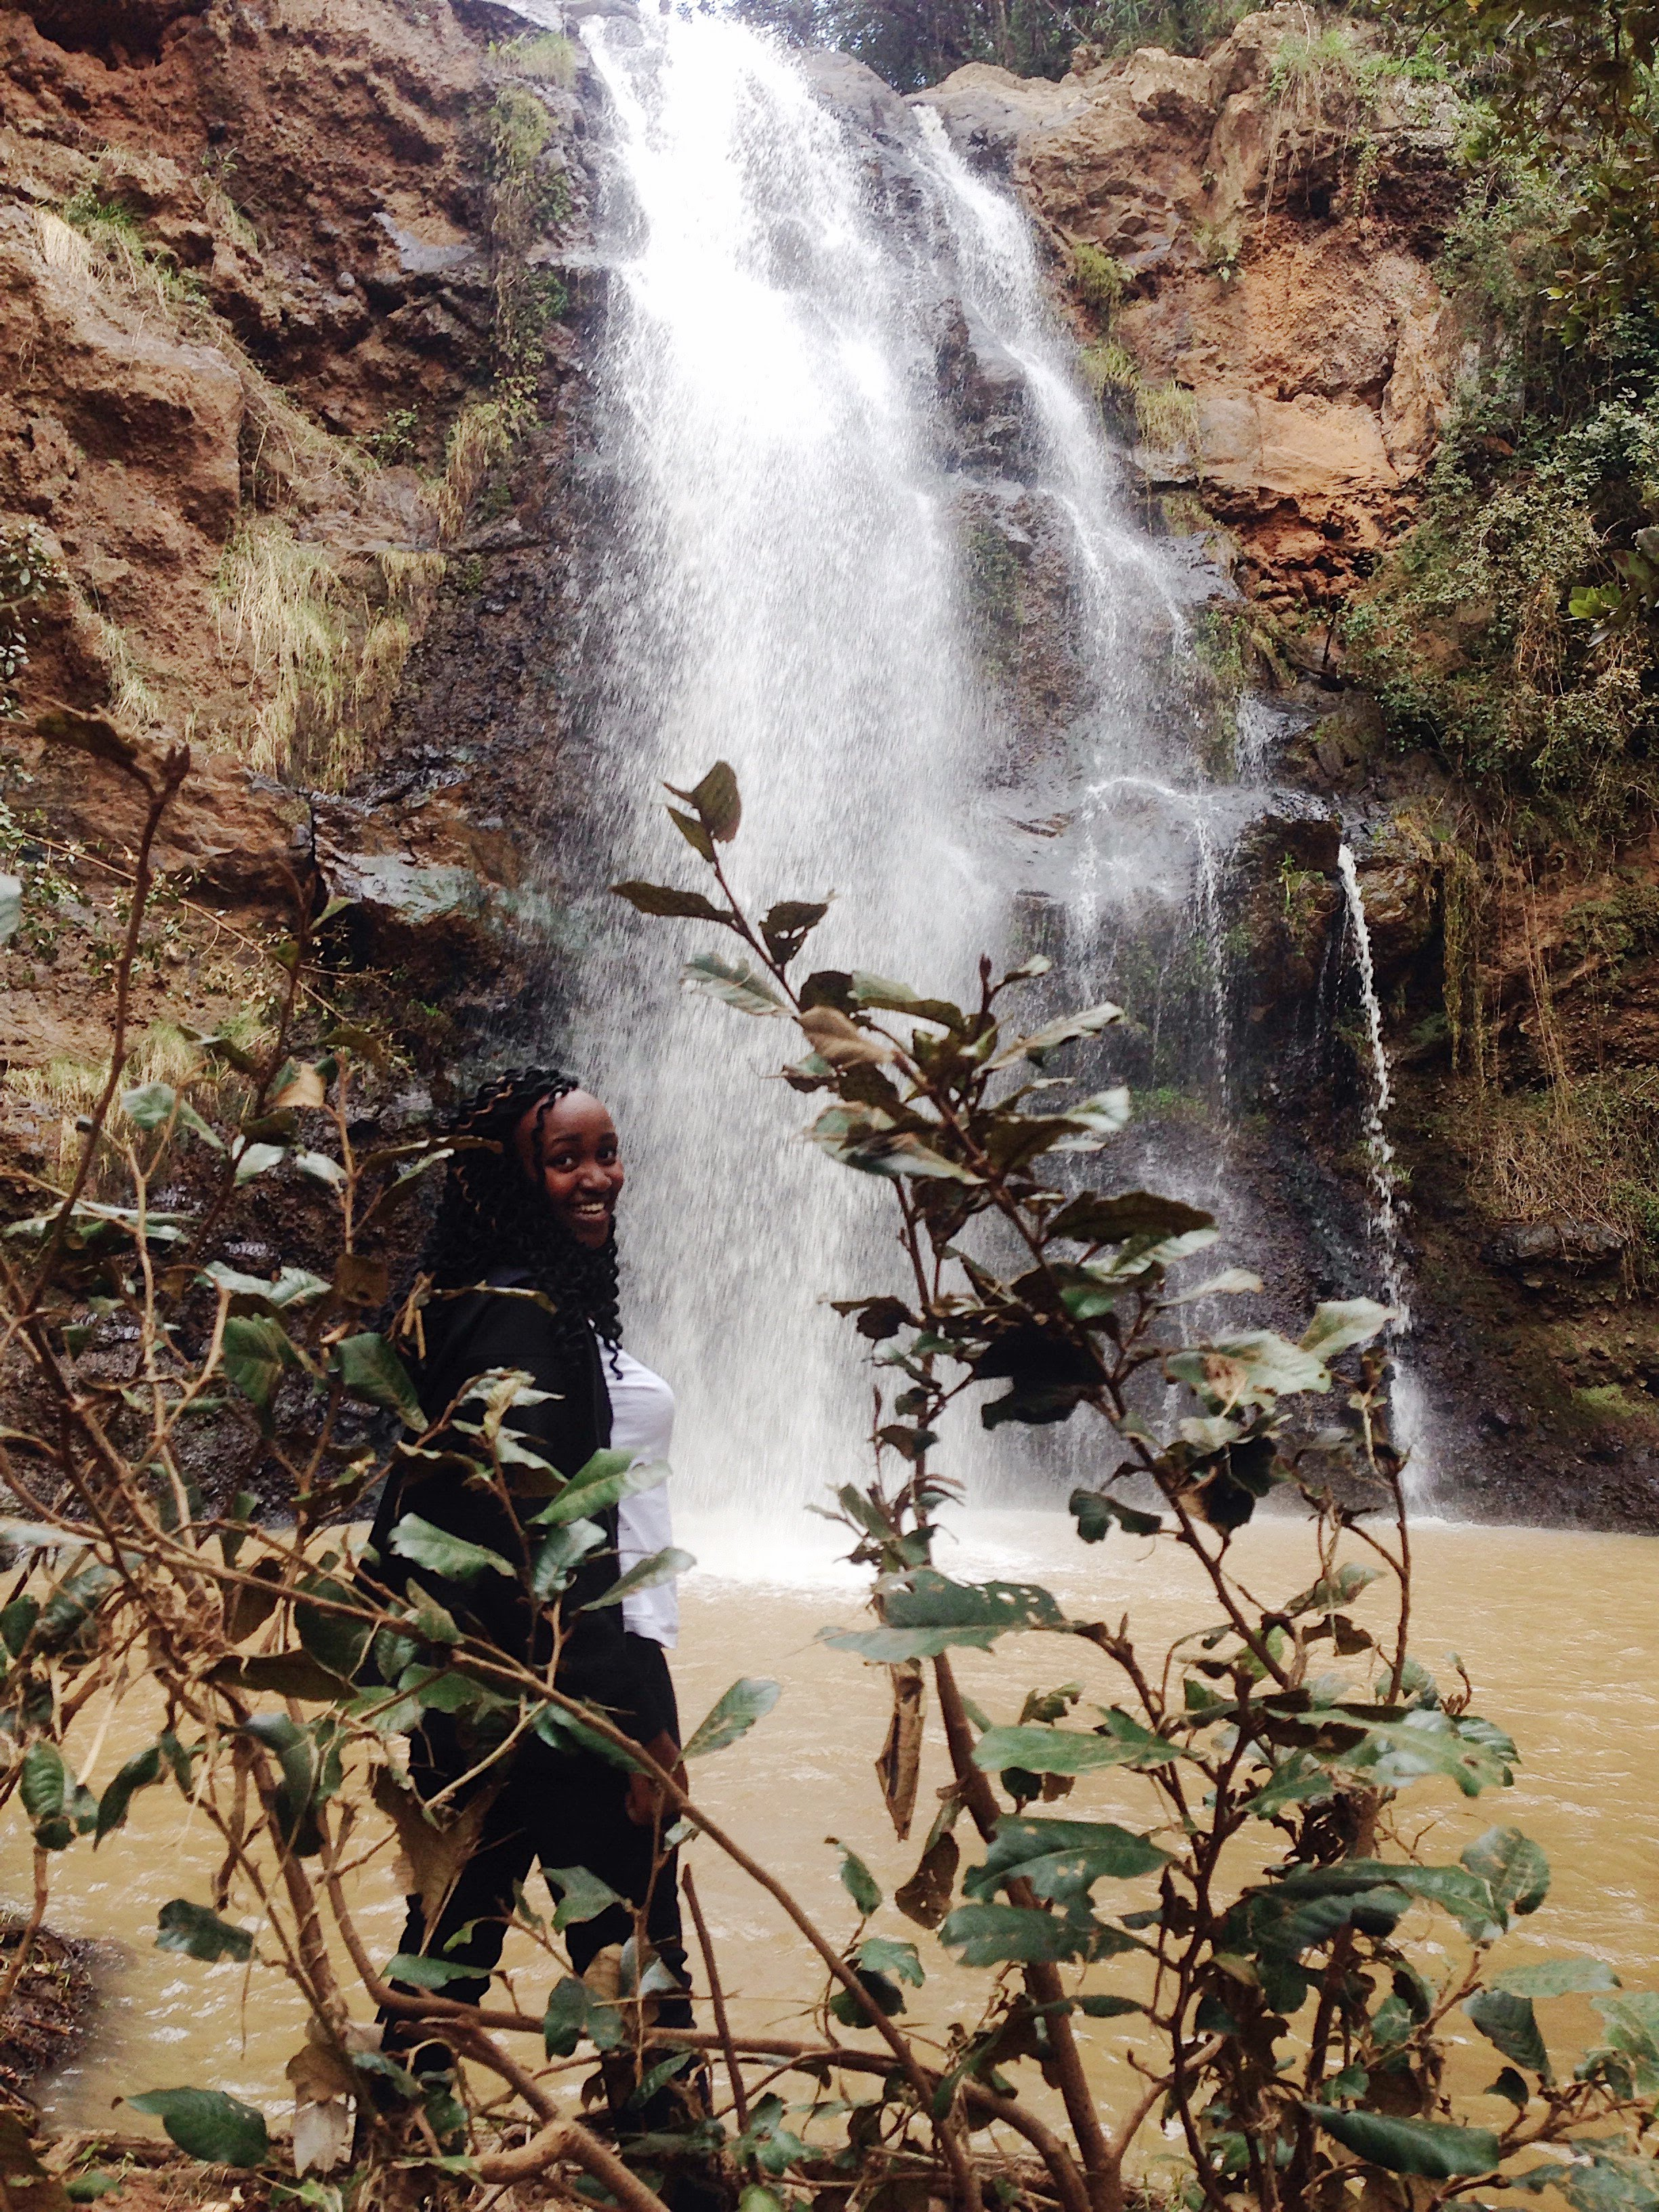 Ngare Ndare Forest